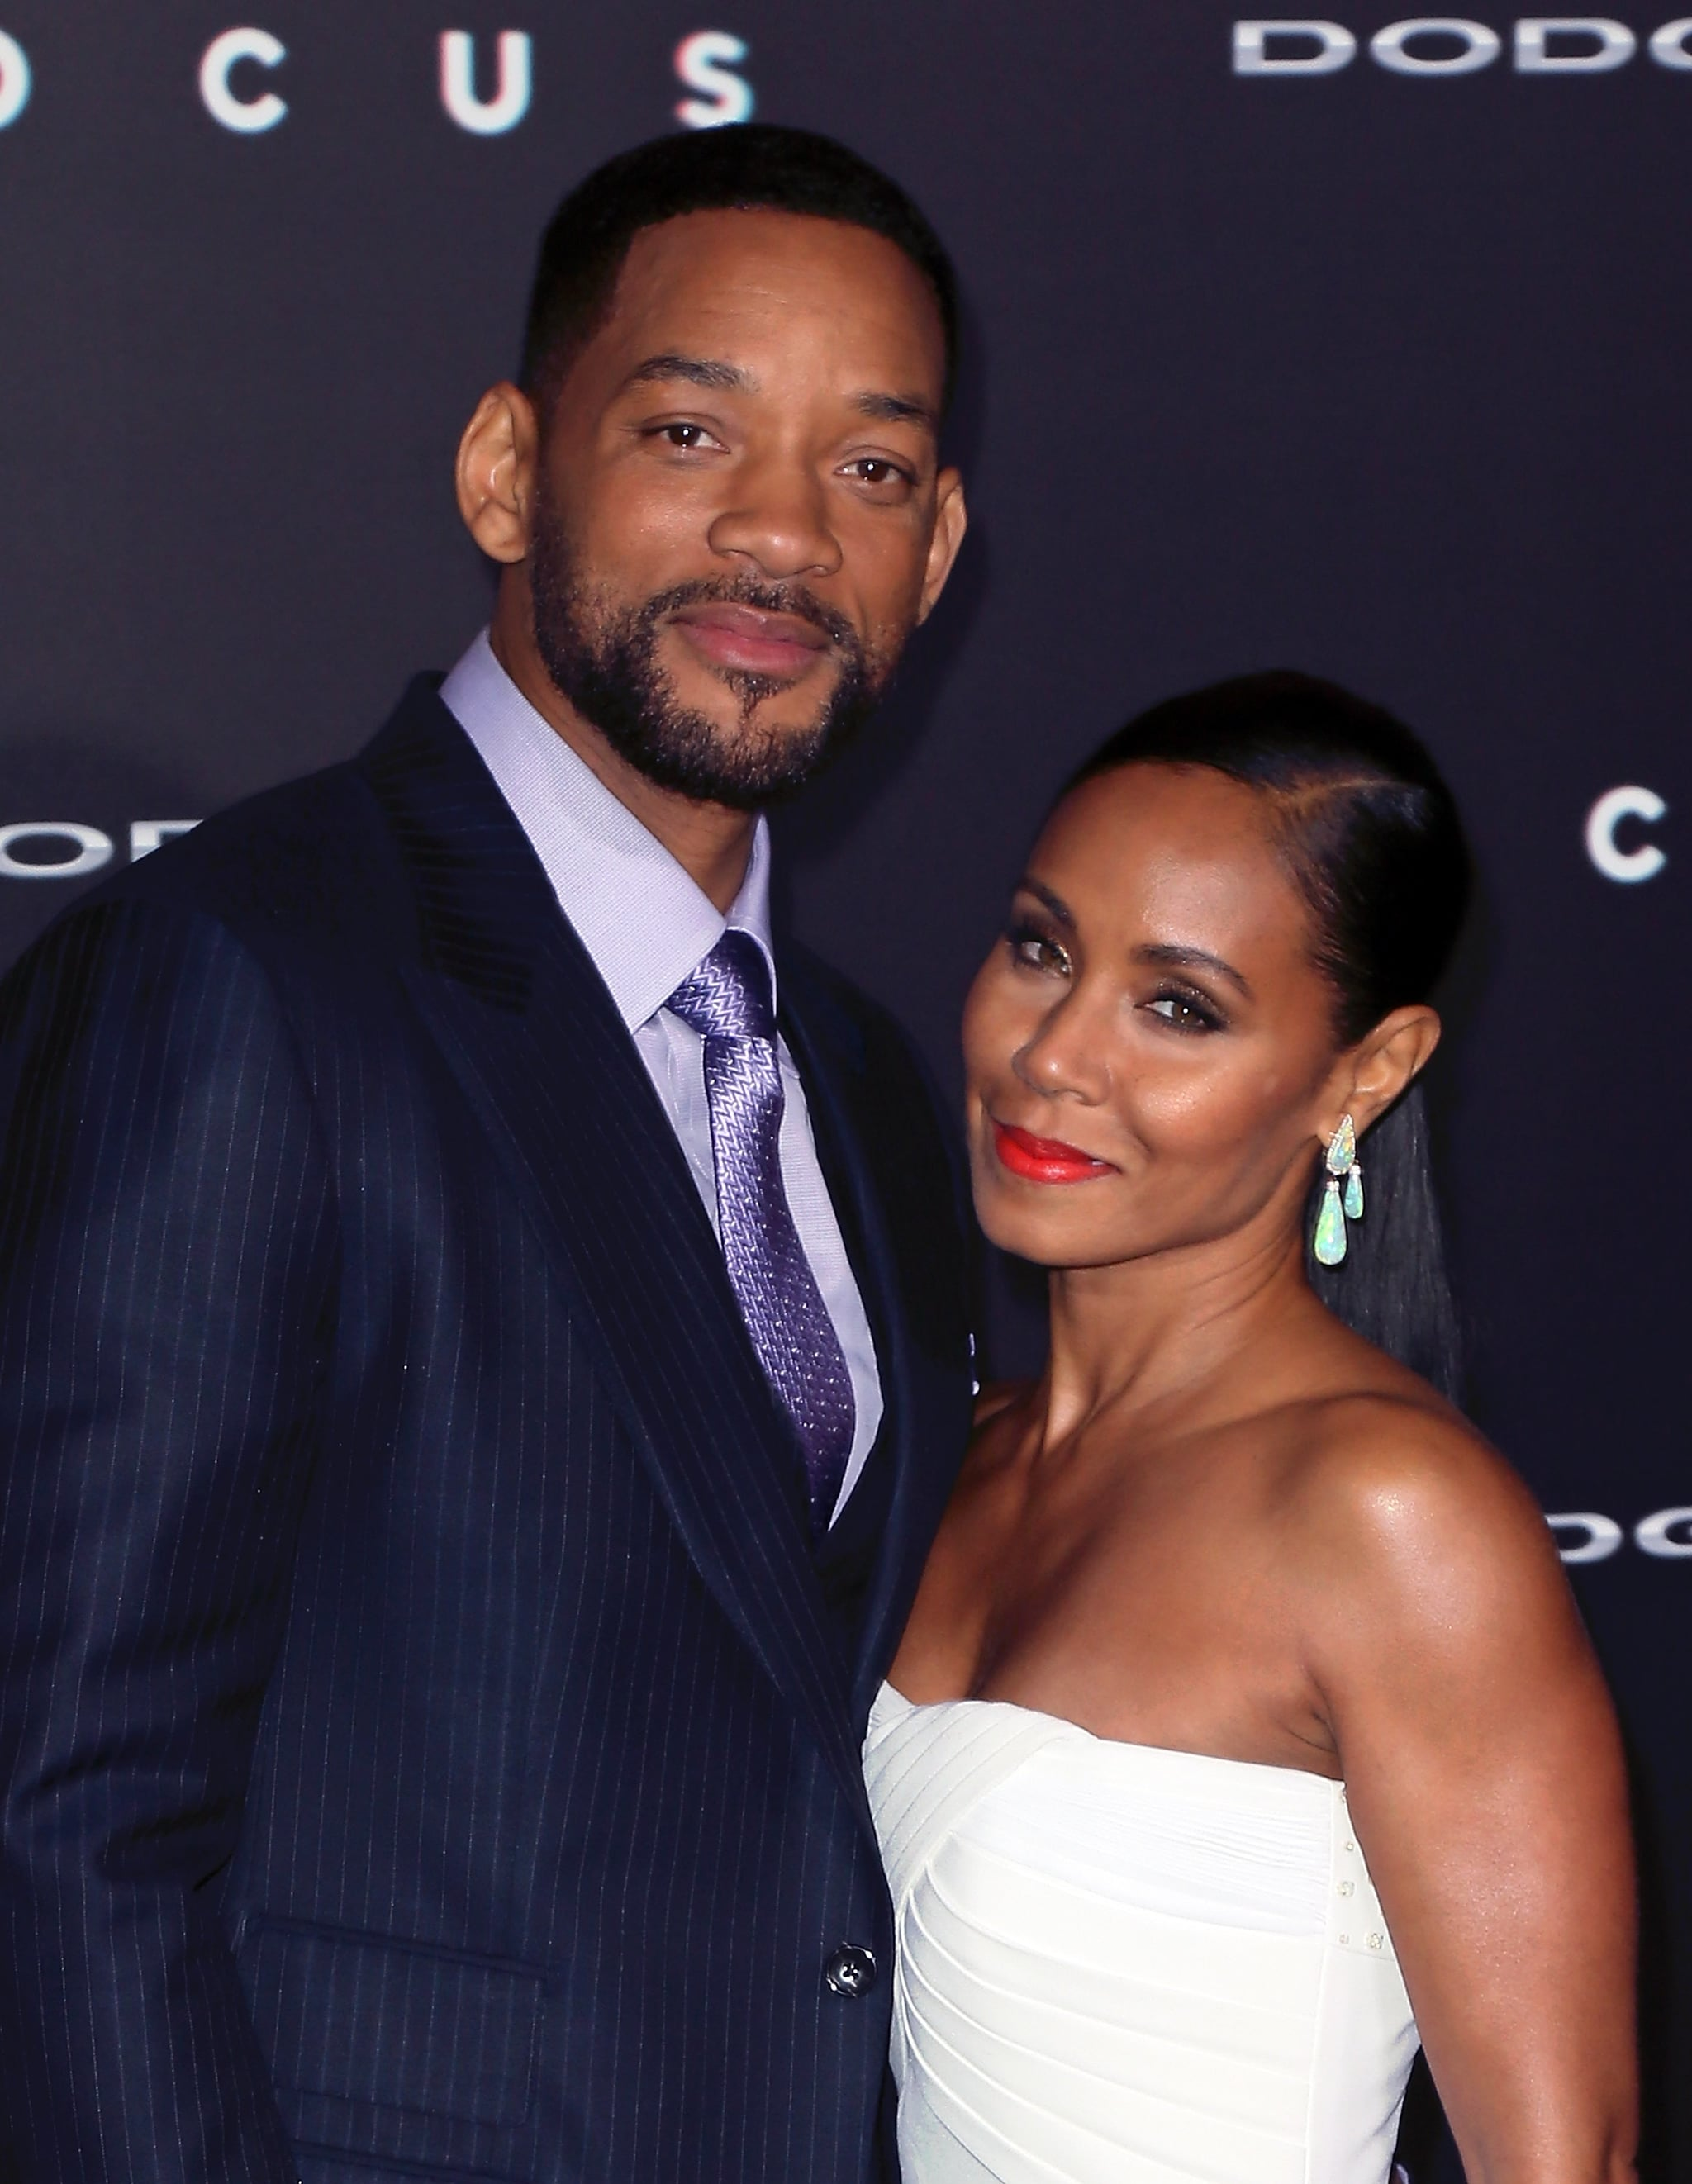 HOLLYWOOD, CA - FEBRUARY 24:  Actor Will Smith and wife actress Jada Pinkett Smith attend the premiere of Warner Bros. Pictures'